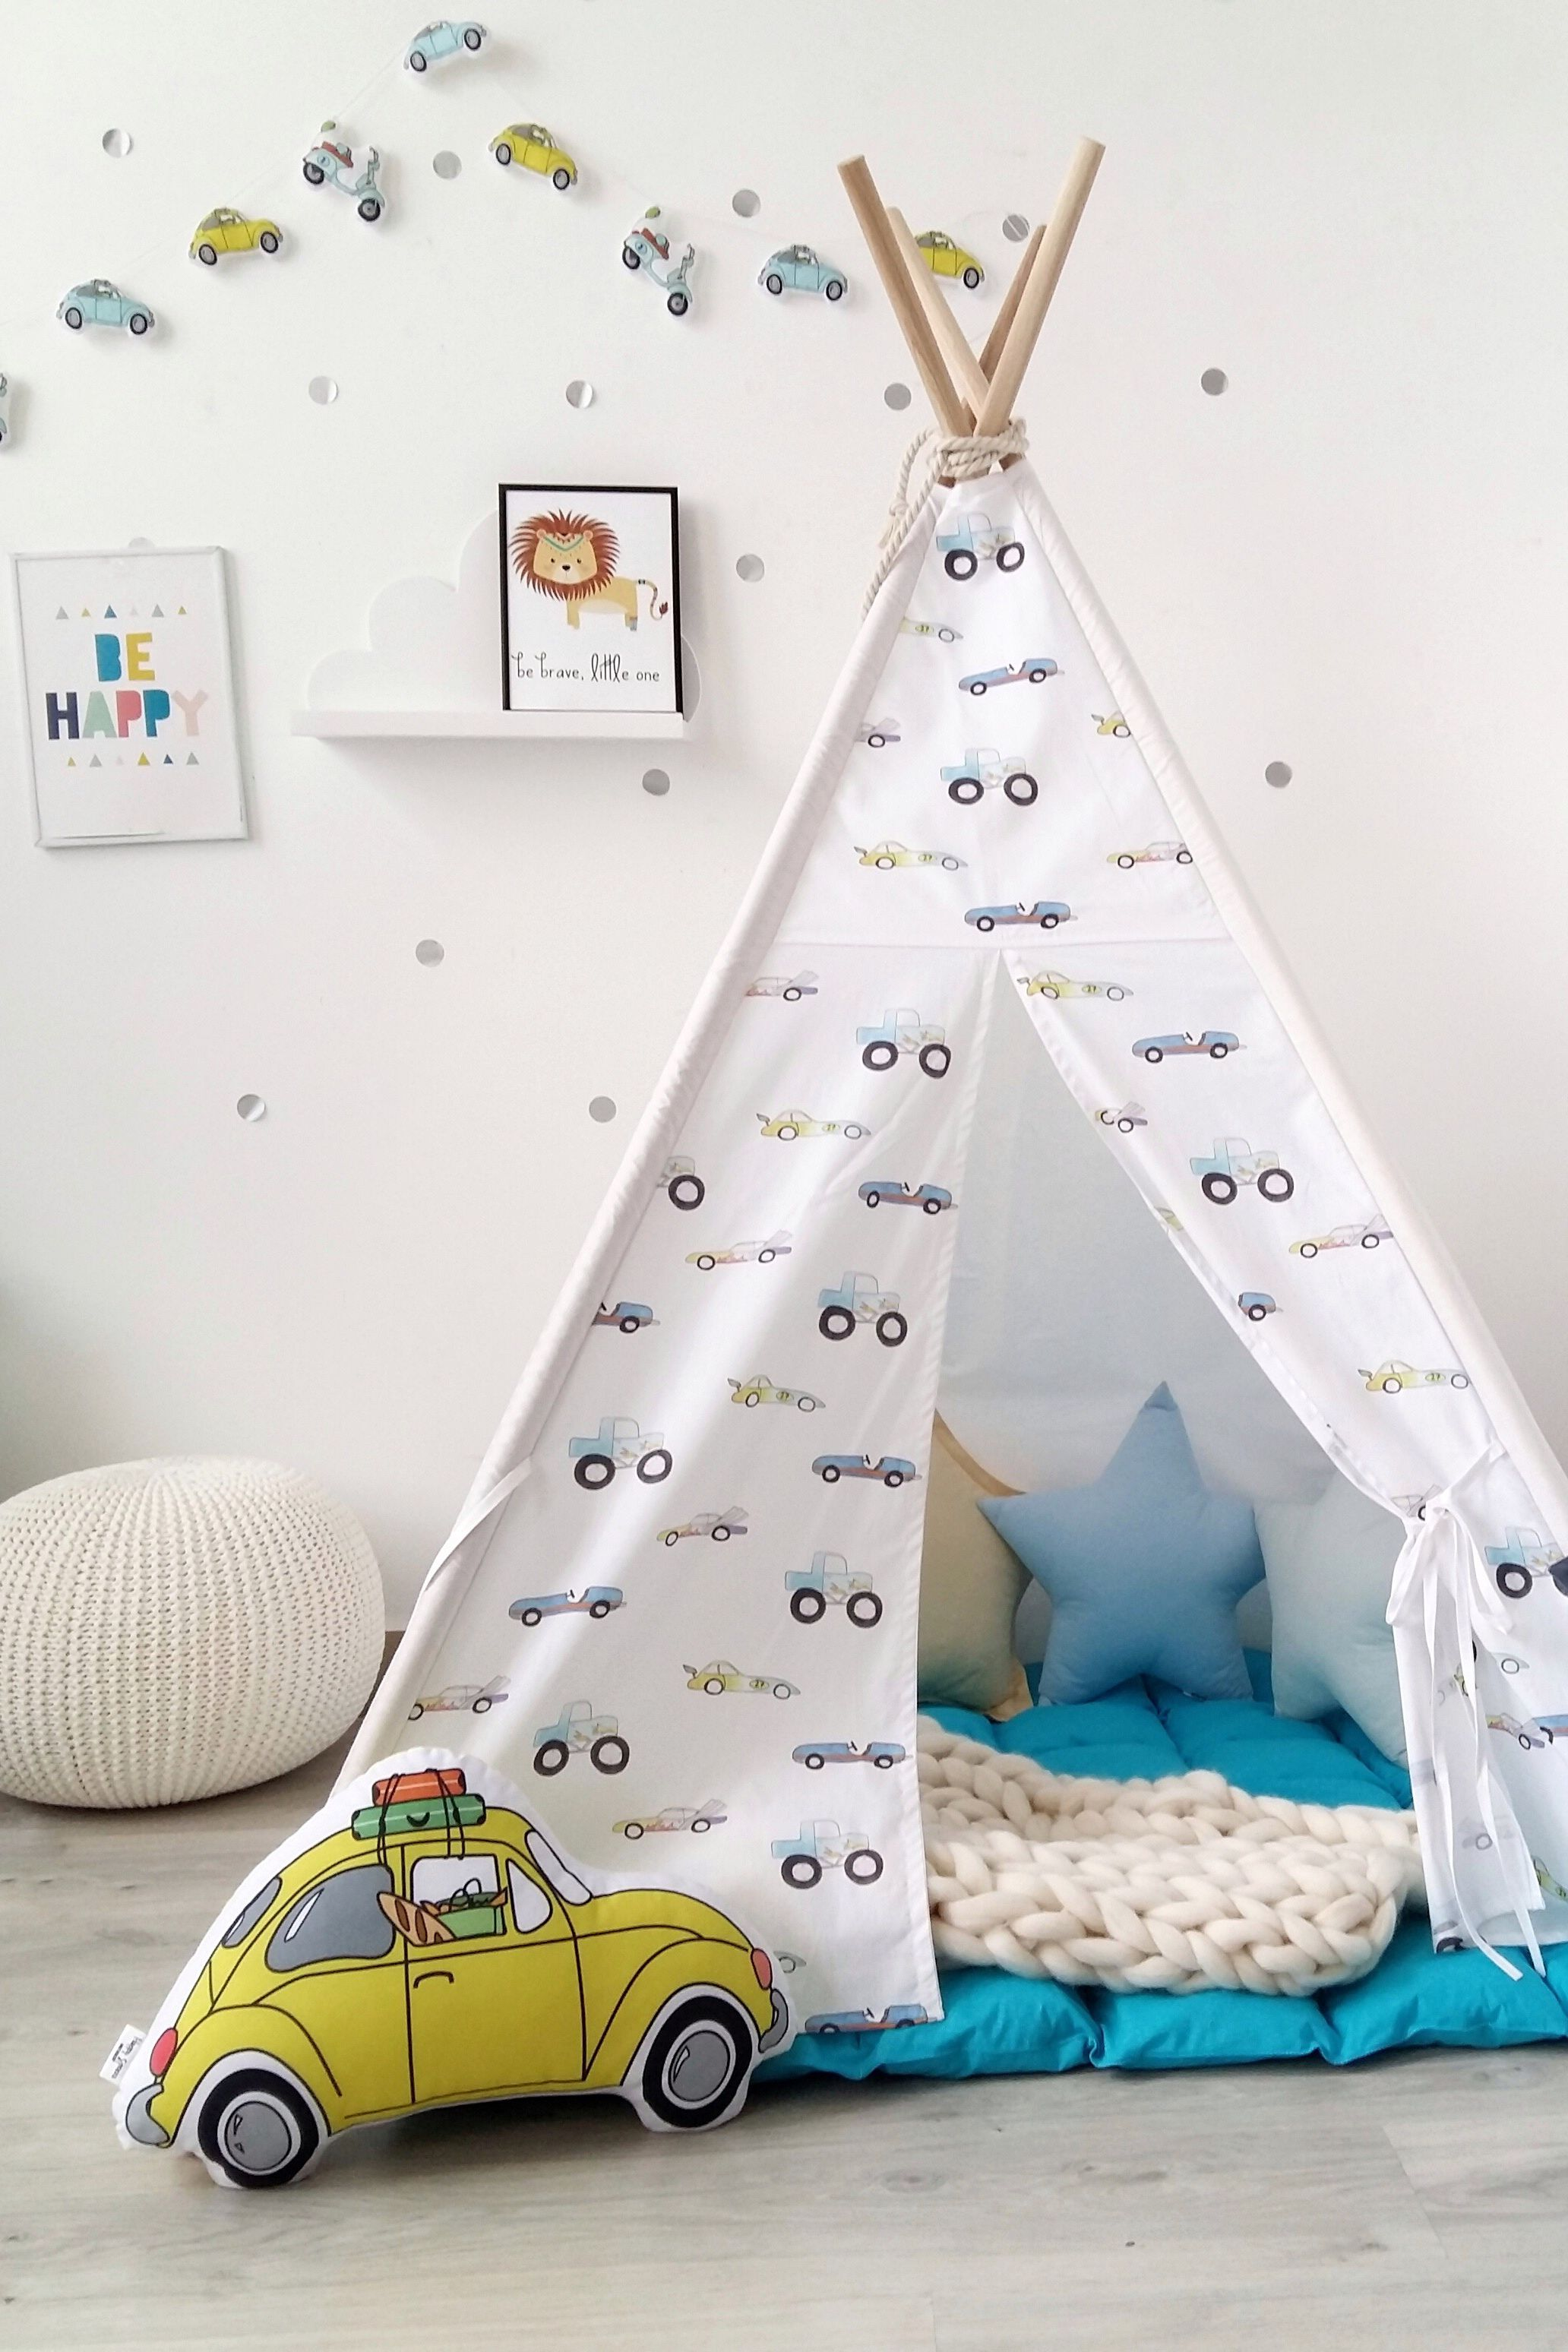 Boys Tepee Wigwam With Cars To Buy On Etsy Happy Spaces Workshop Kids Teepee Indoor Outdoor Play Tent Bo Baby Boy Room Decor Baby Boy Rooms Teepee Kids